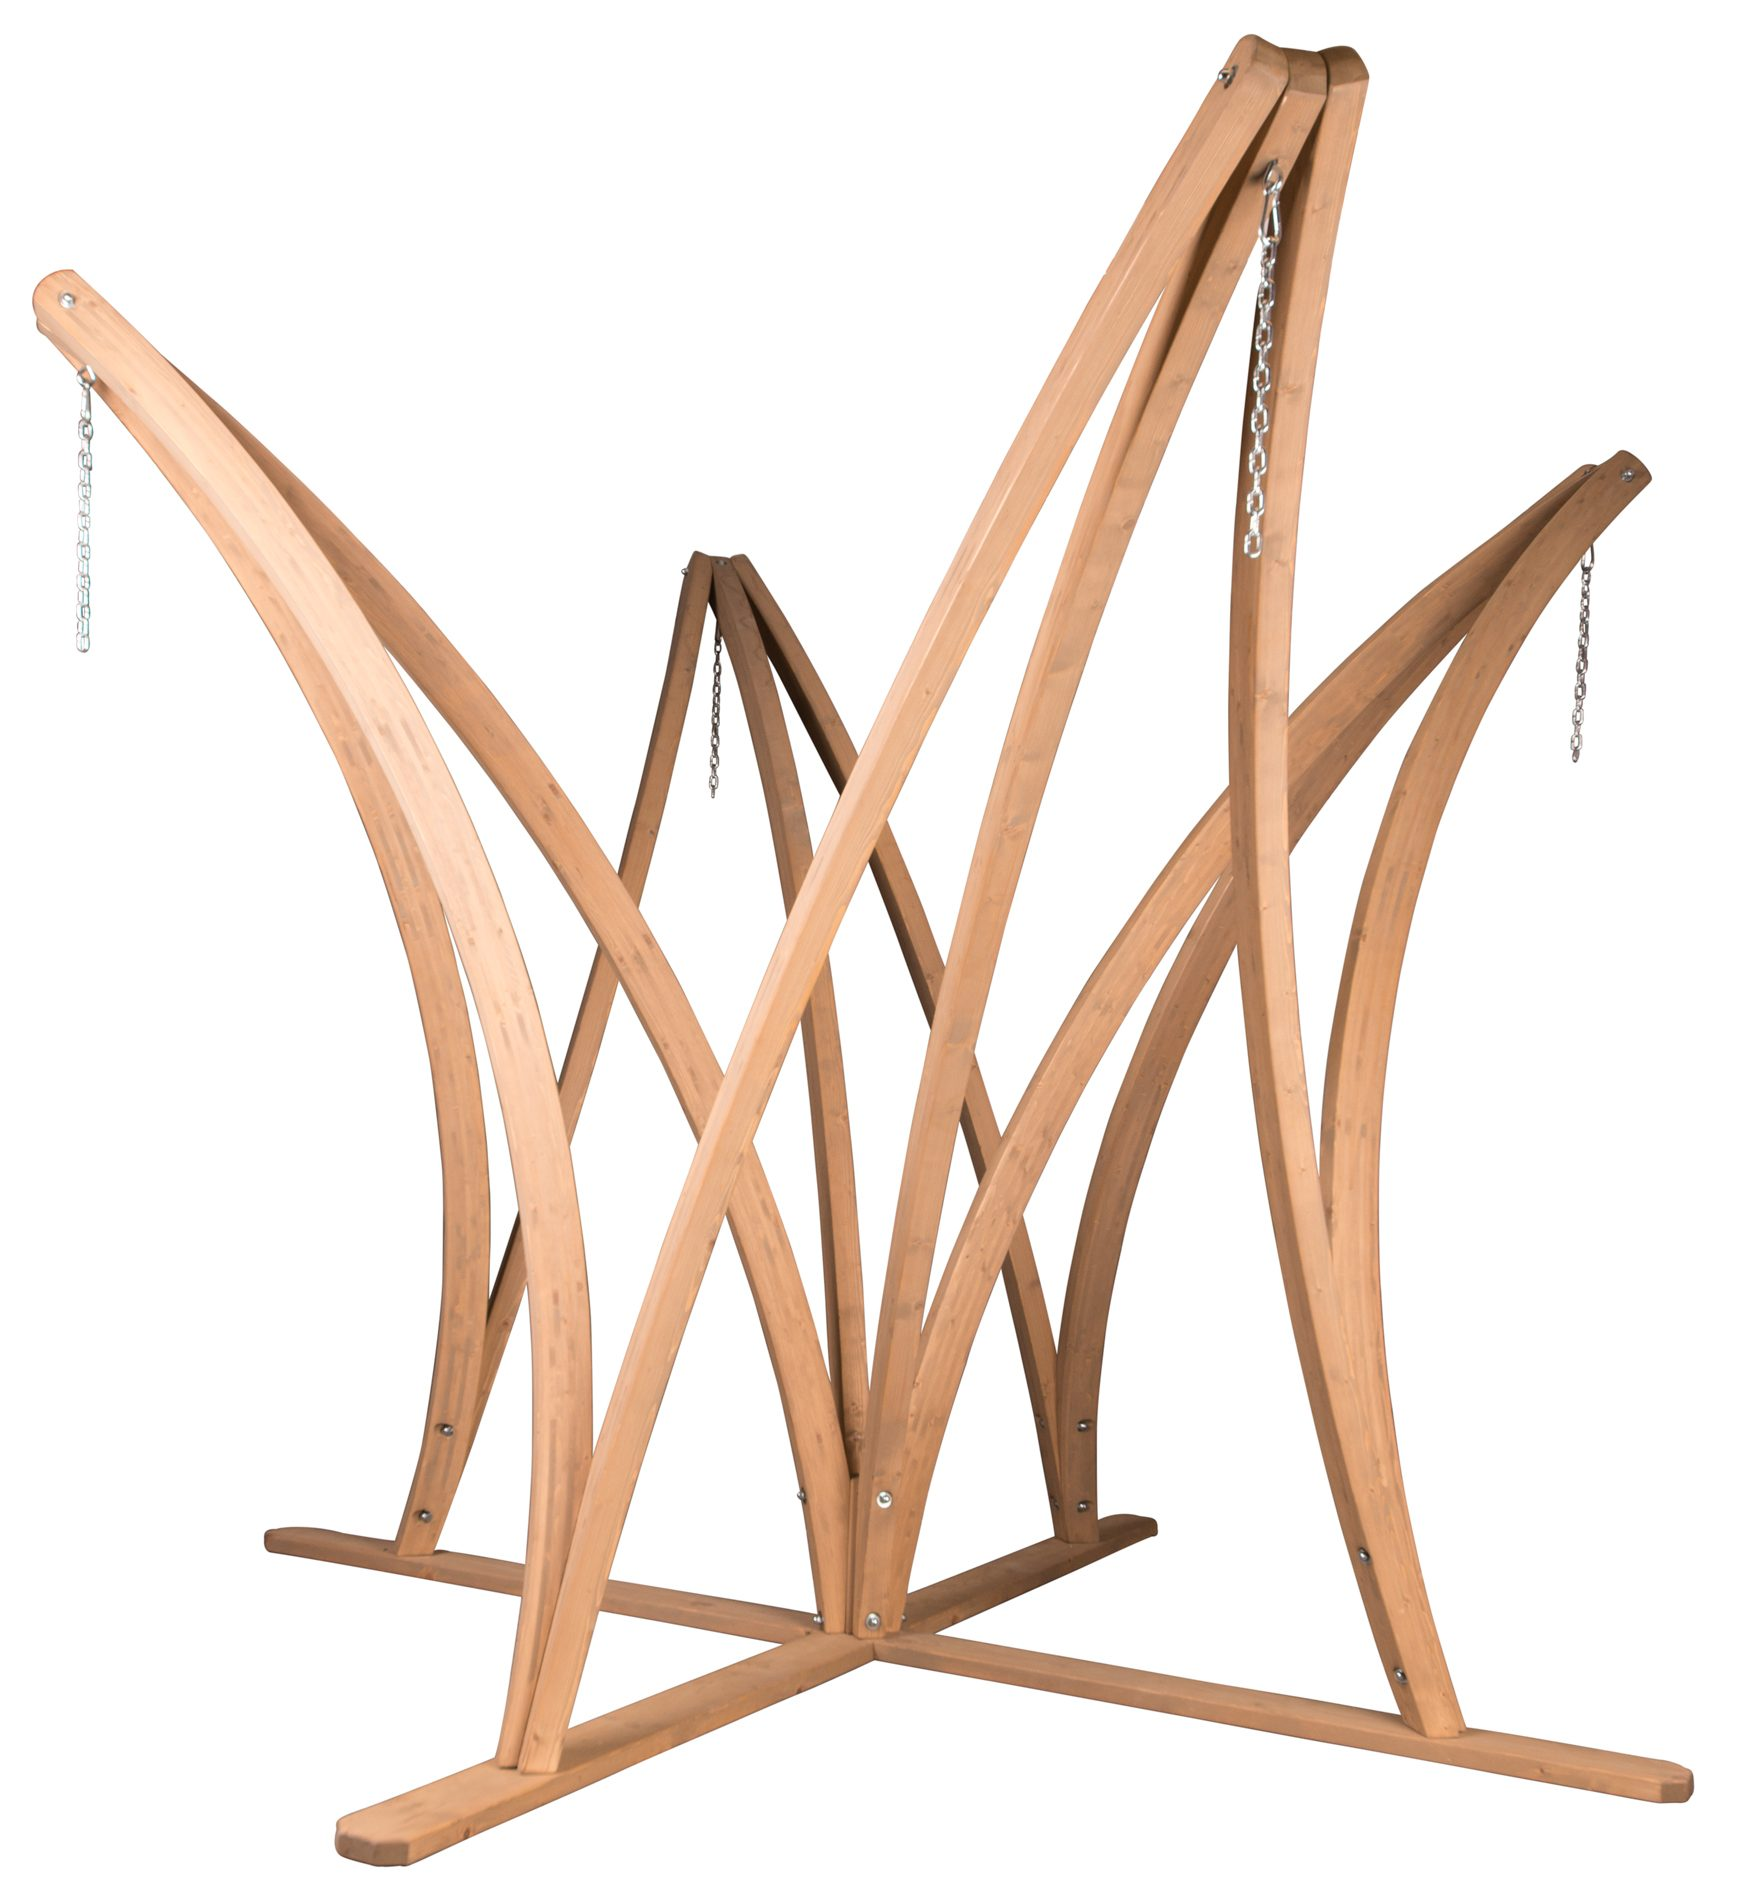 wooden Stand for 2 3 or 4 hammocks